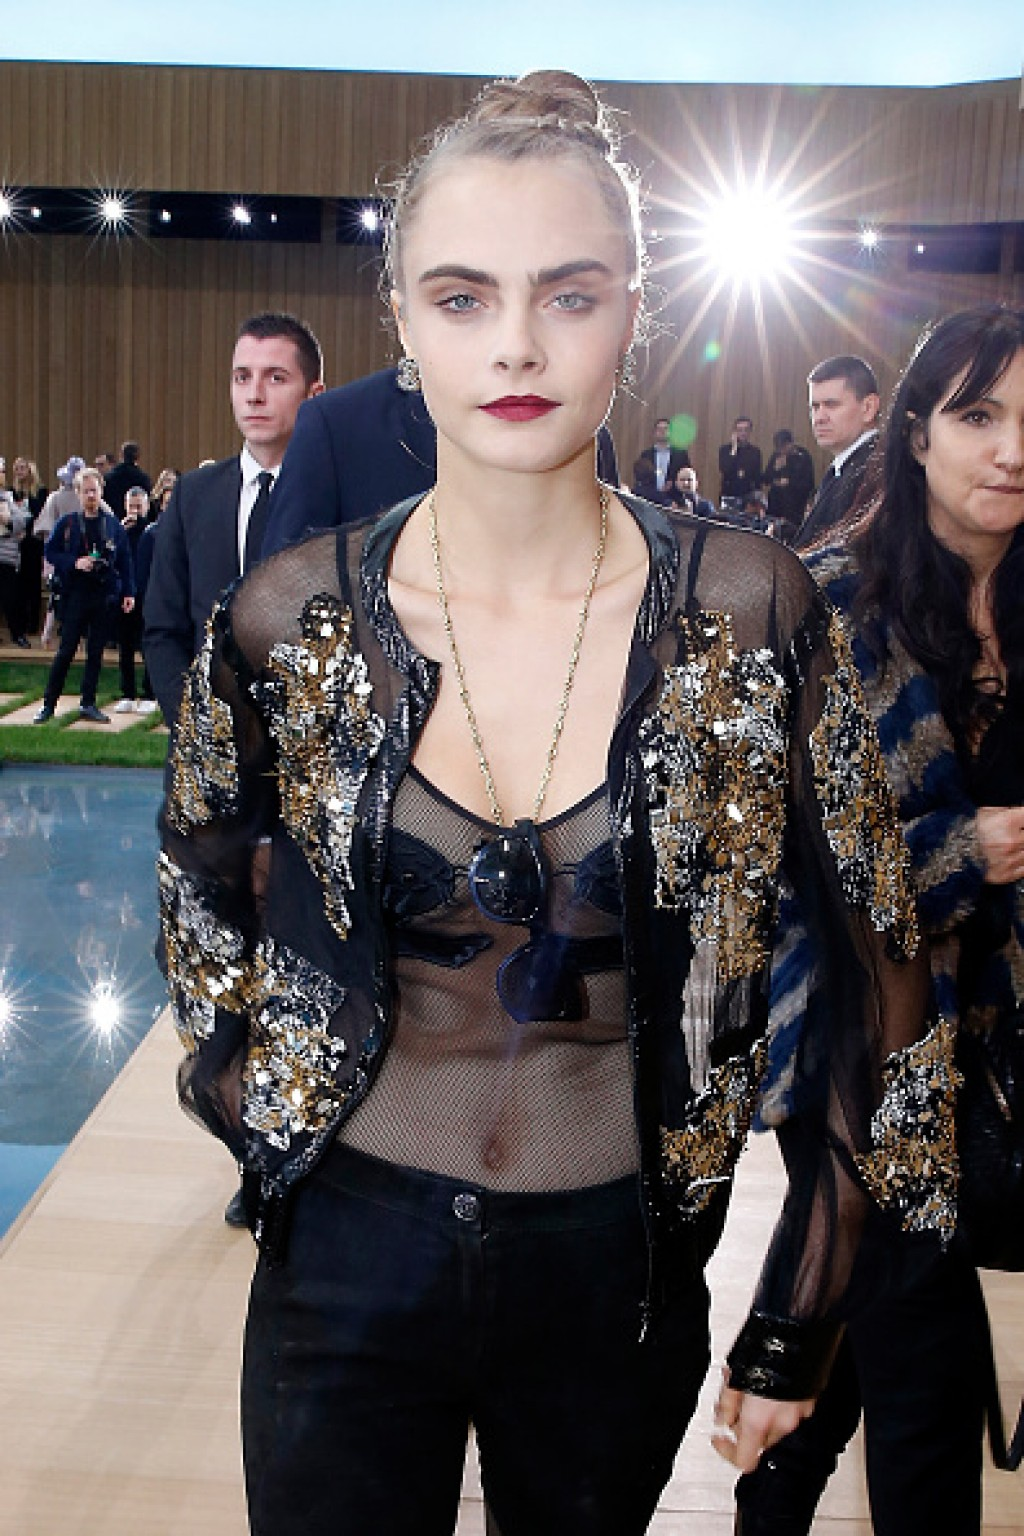 Chanel-Front-Row-Paris-Fashion-Week-Cara-in-Chanel-2016-D-1024x1536-1